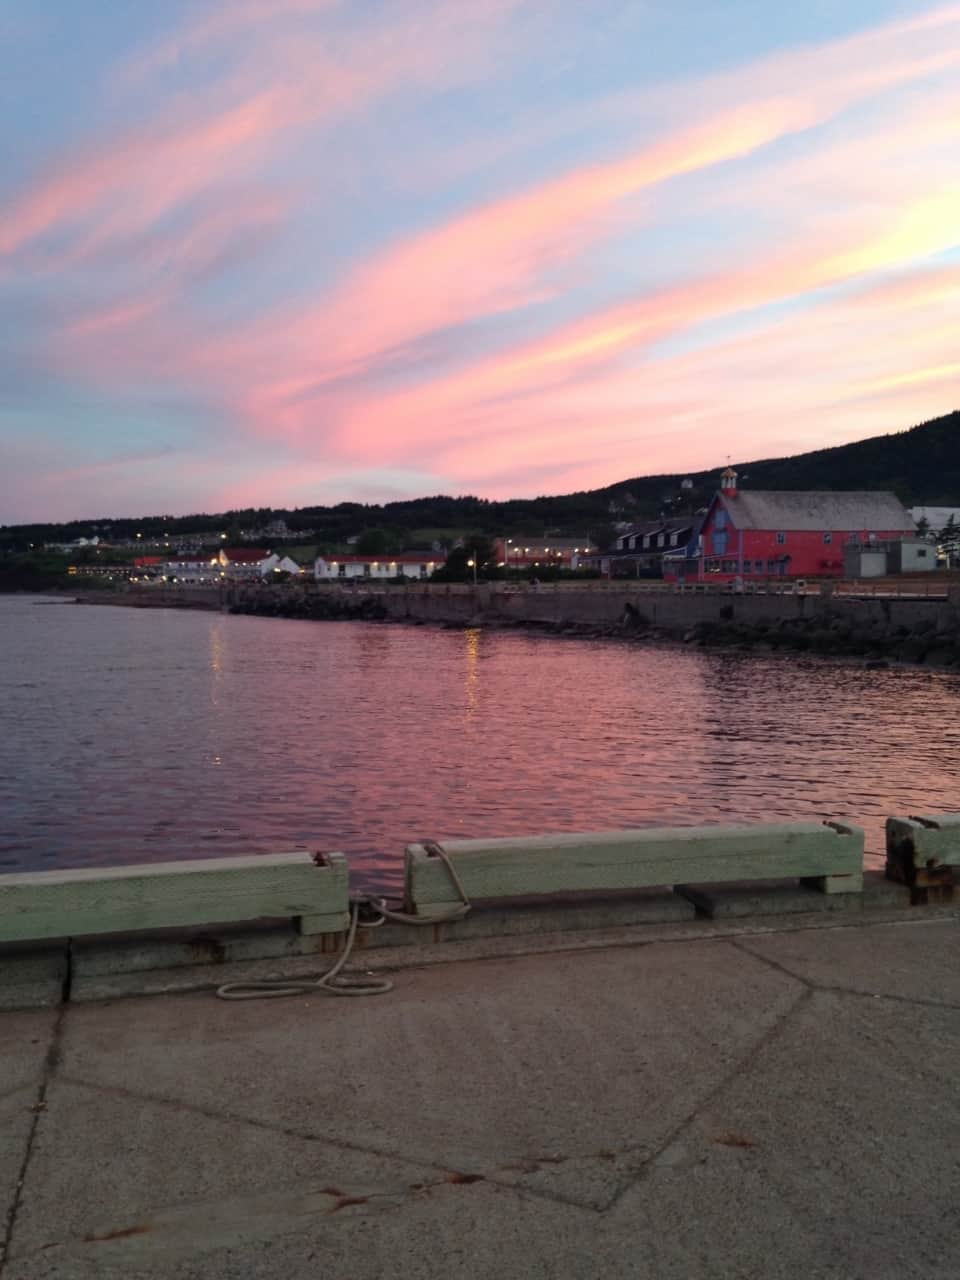 fd37a385a069bb253659948e.jpg - Perce, QC - Across Canada in search of #BIGselfies trip 2014<br />What a beautiful place to spend an evening